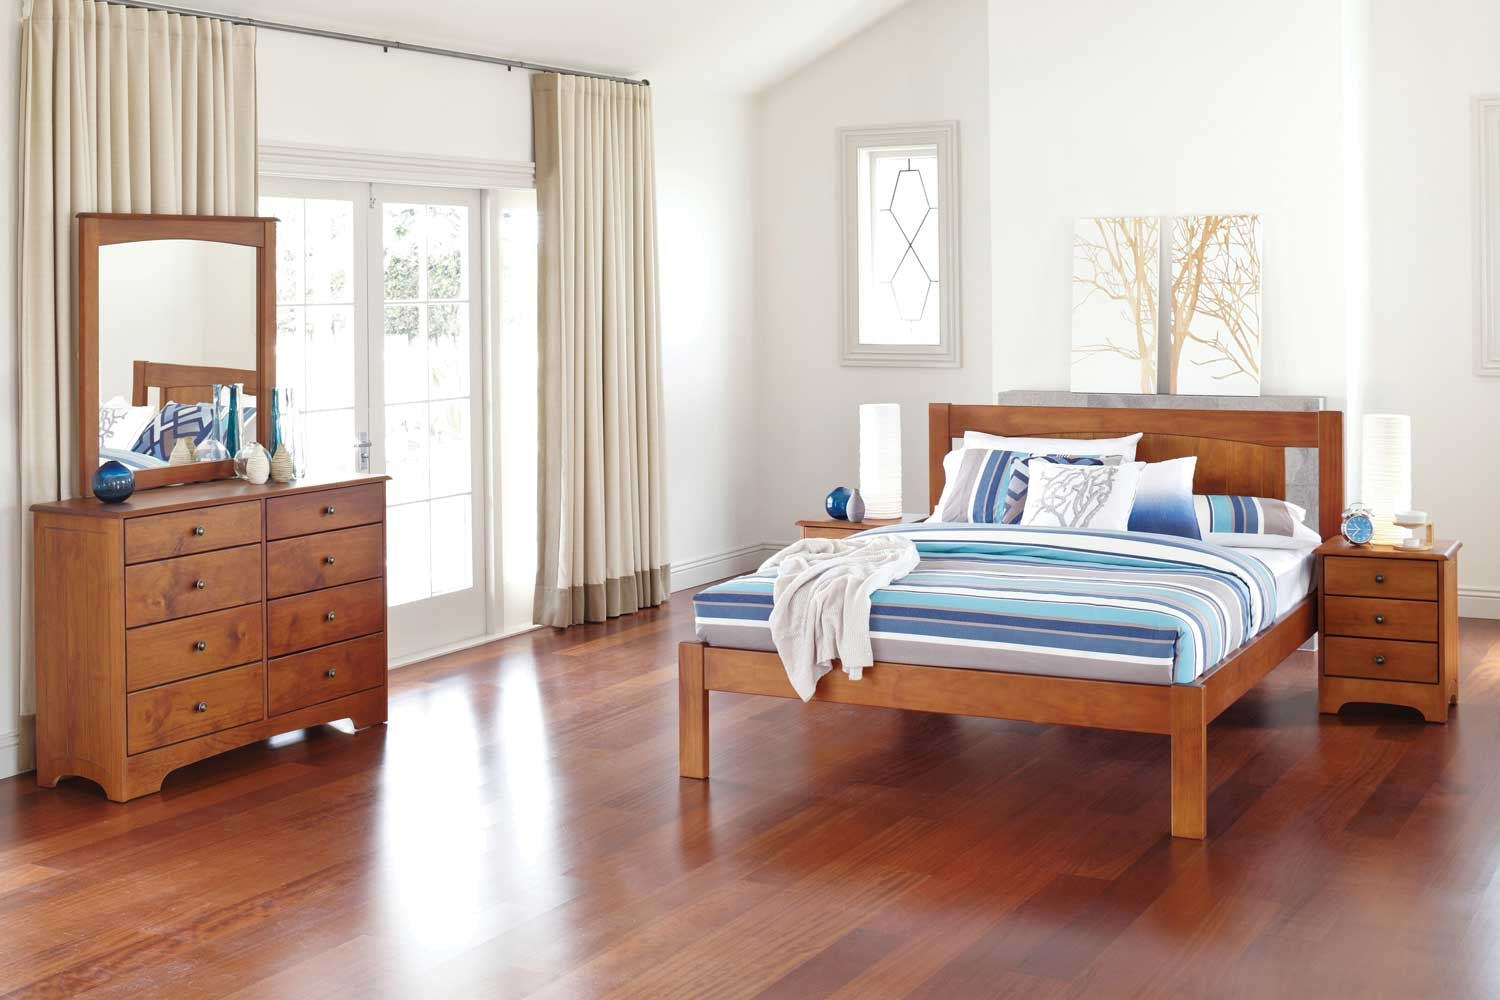 Calais Bedroom Furniture by Northwood - Rimu Stain